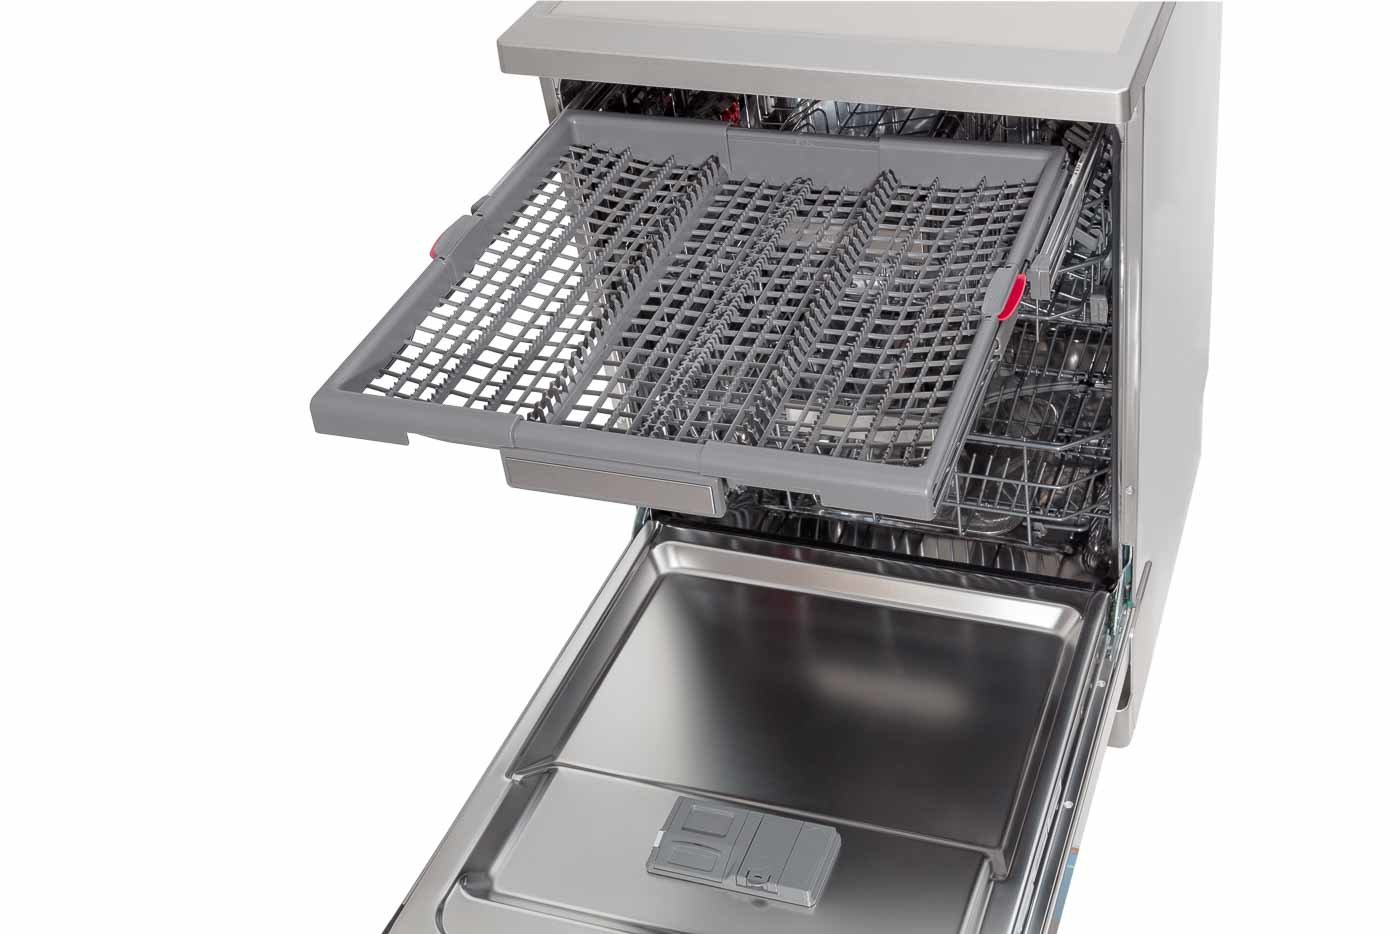 WFO3S23XAUS -45 angle internal close up of top draw pulled out including accessories - Cutlery rack closed